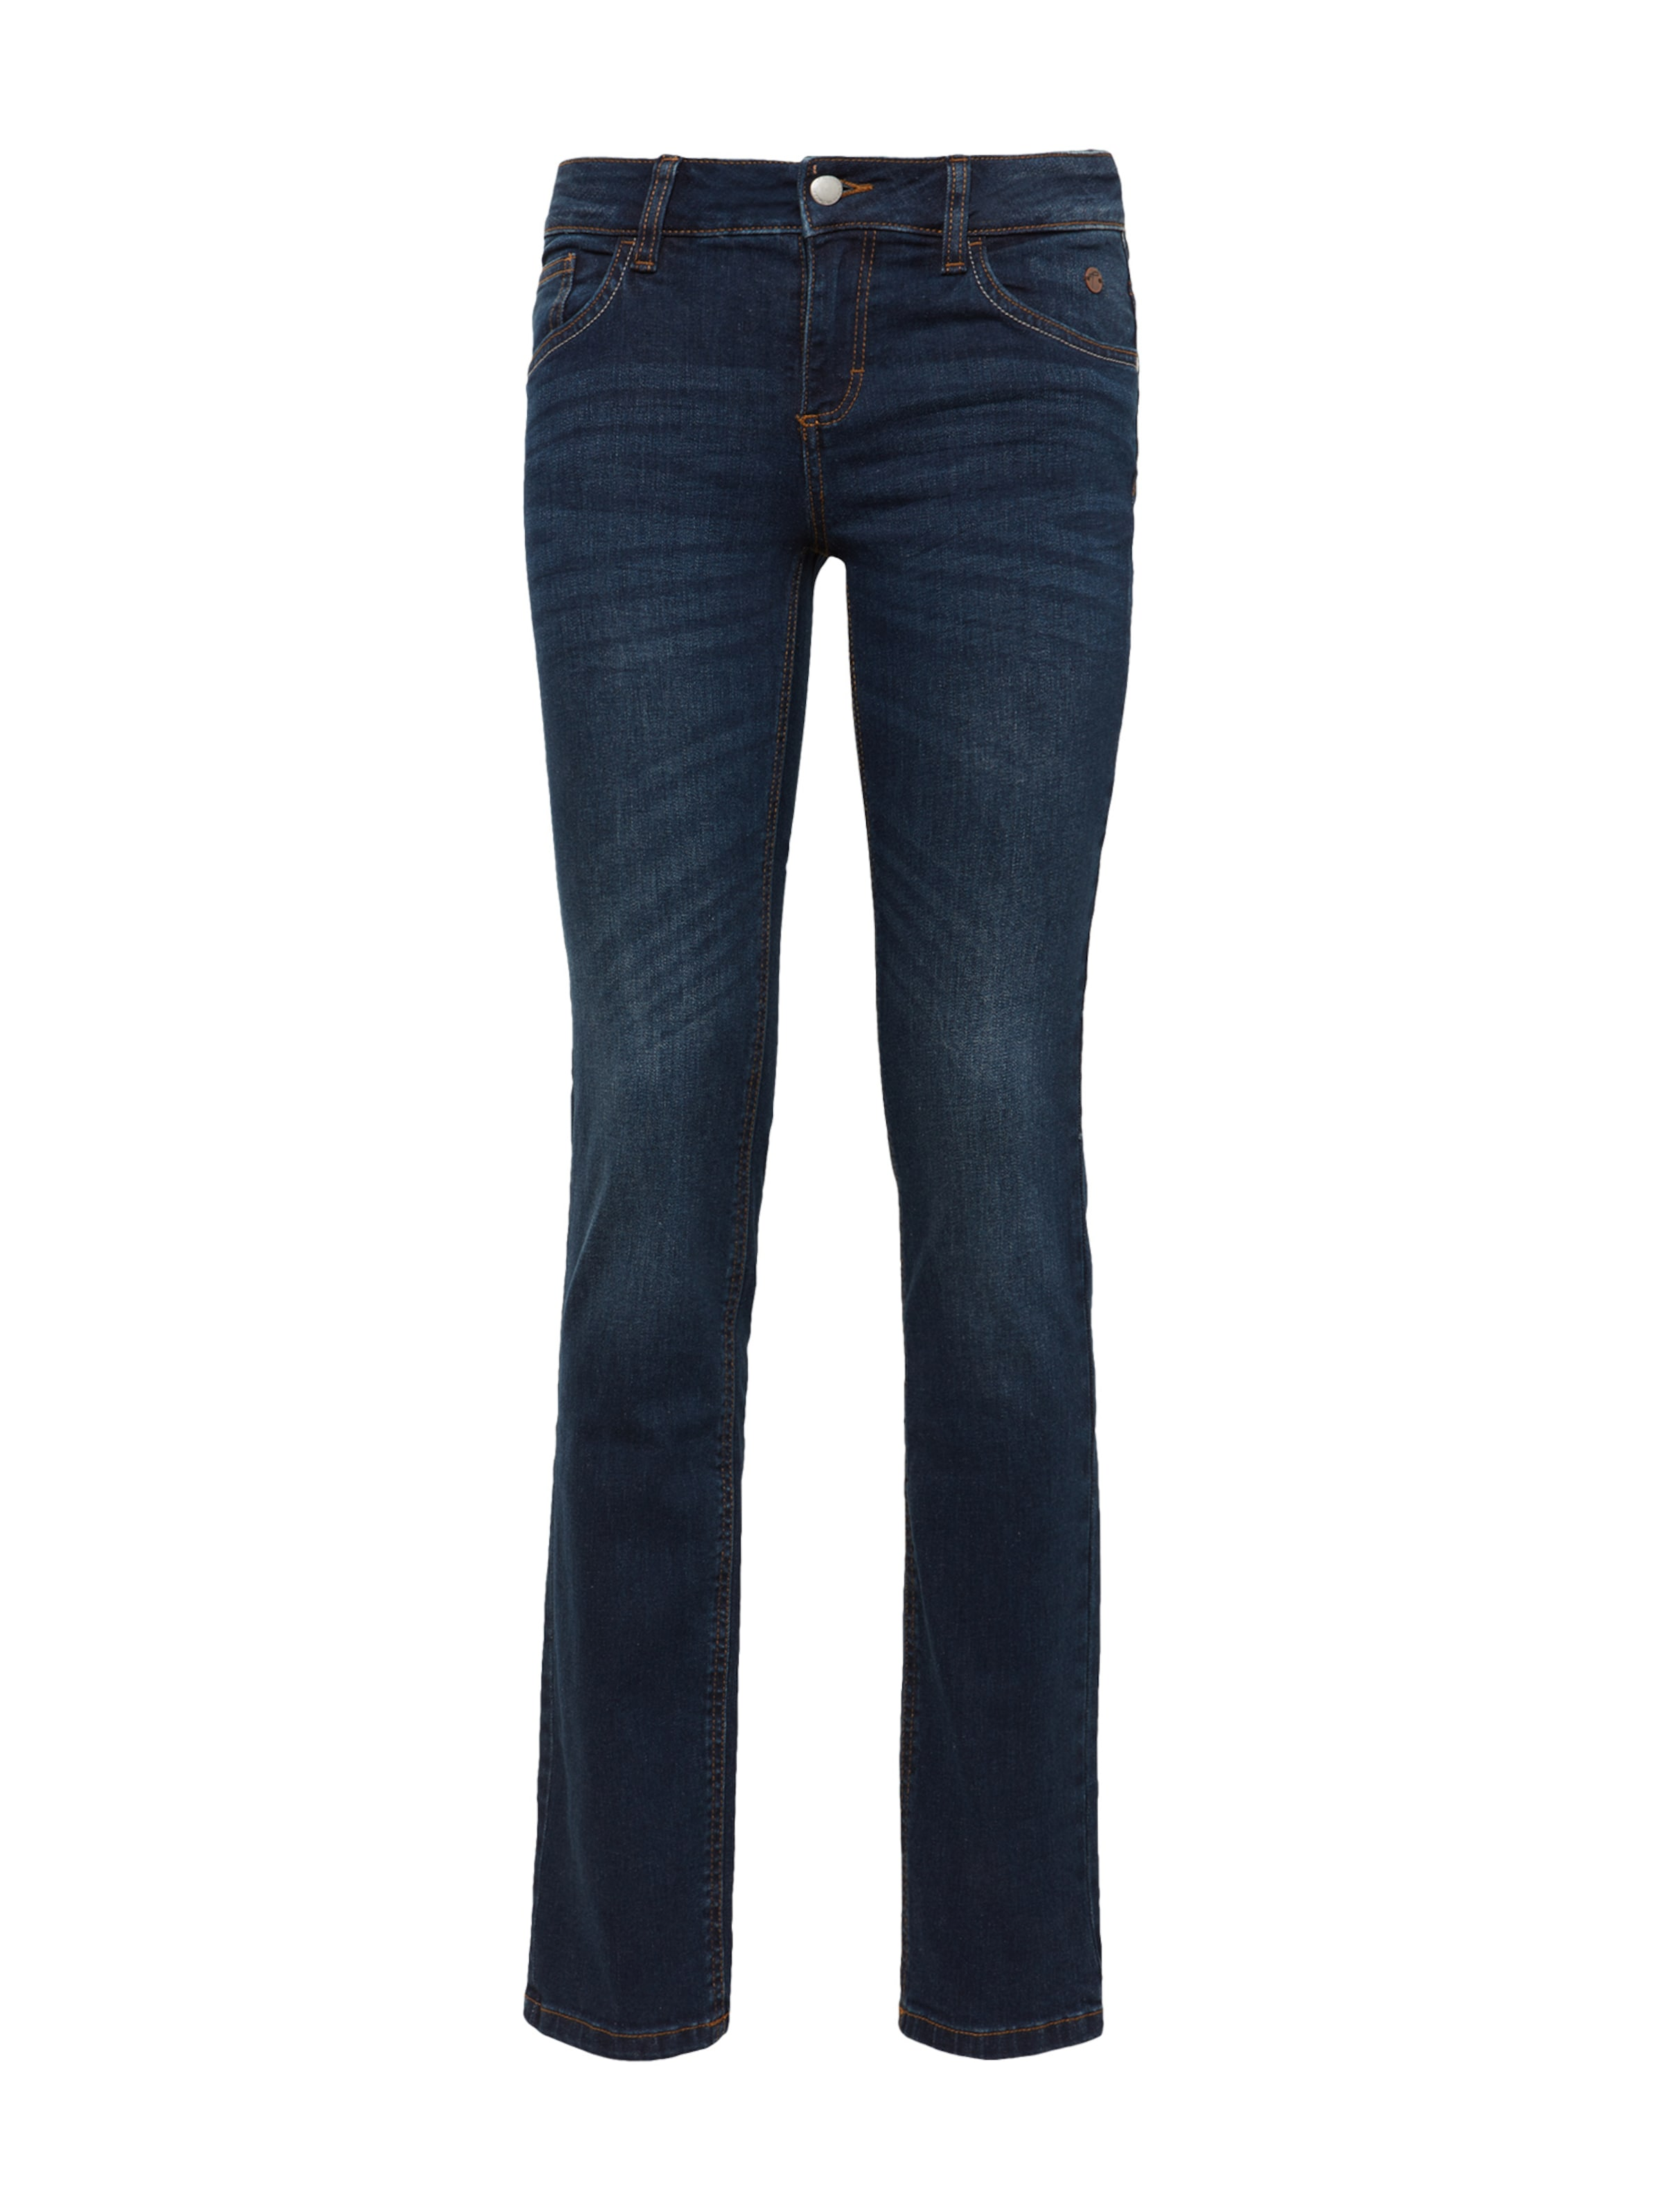 Tailor Tailor Jeans Marine Marine Tom In Tom Tailor Tom Jeans In Jeans 7yYf6bg